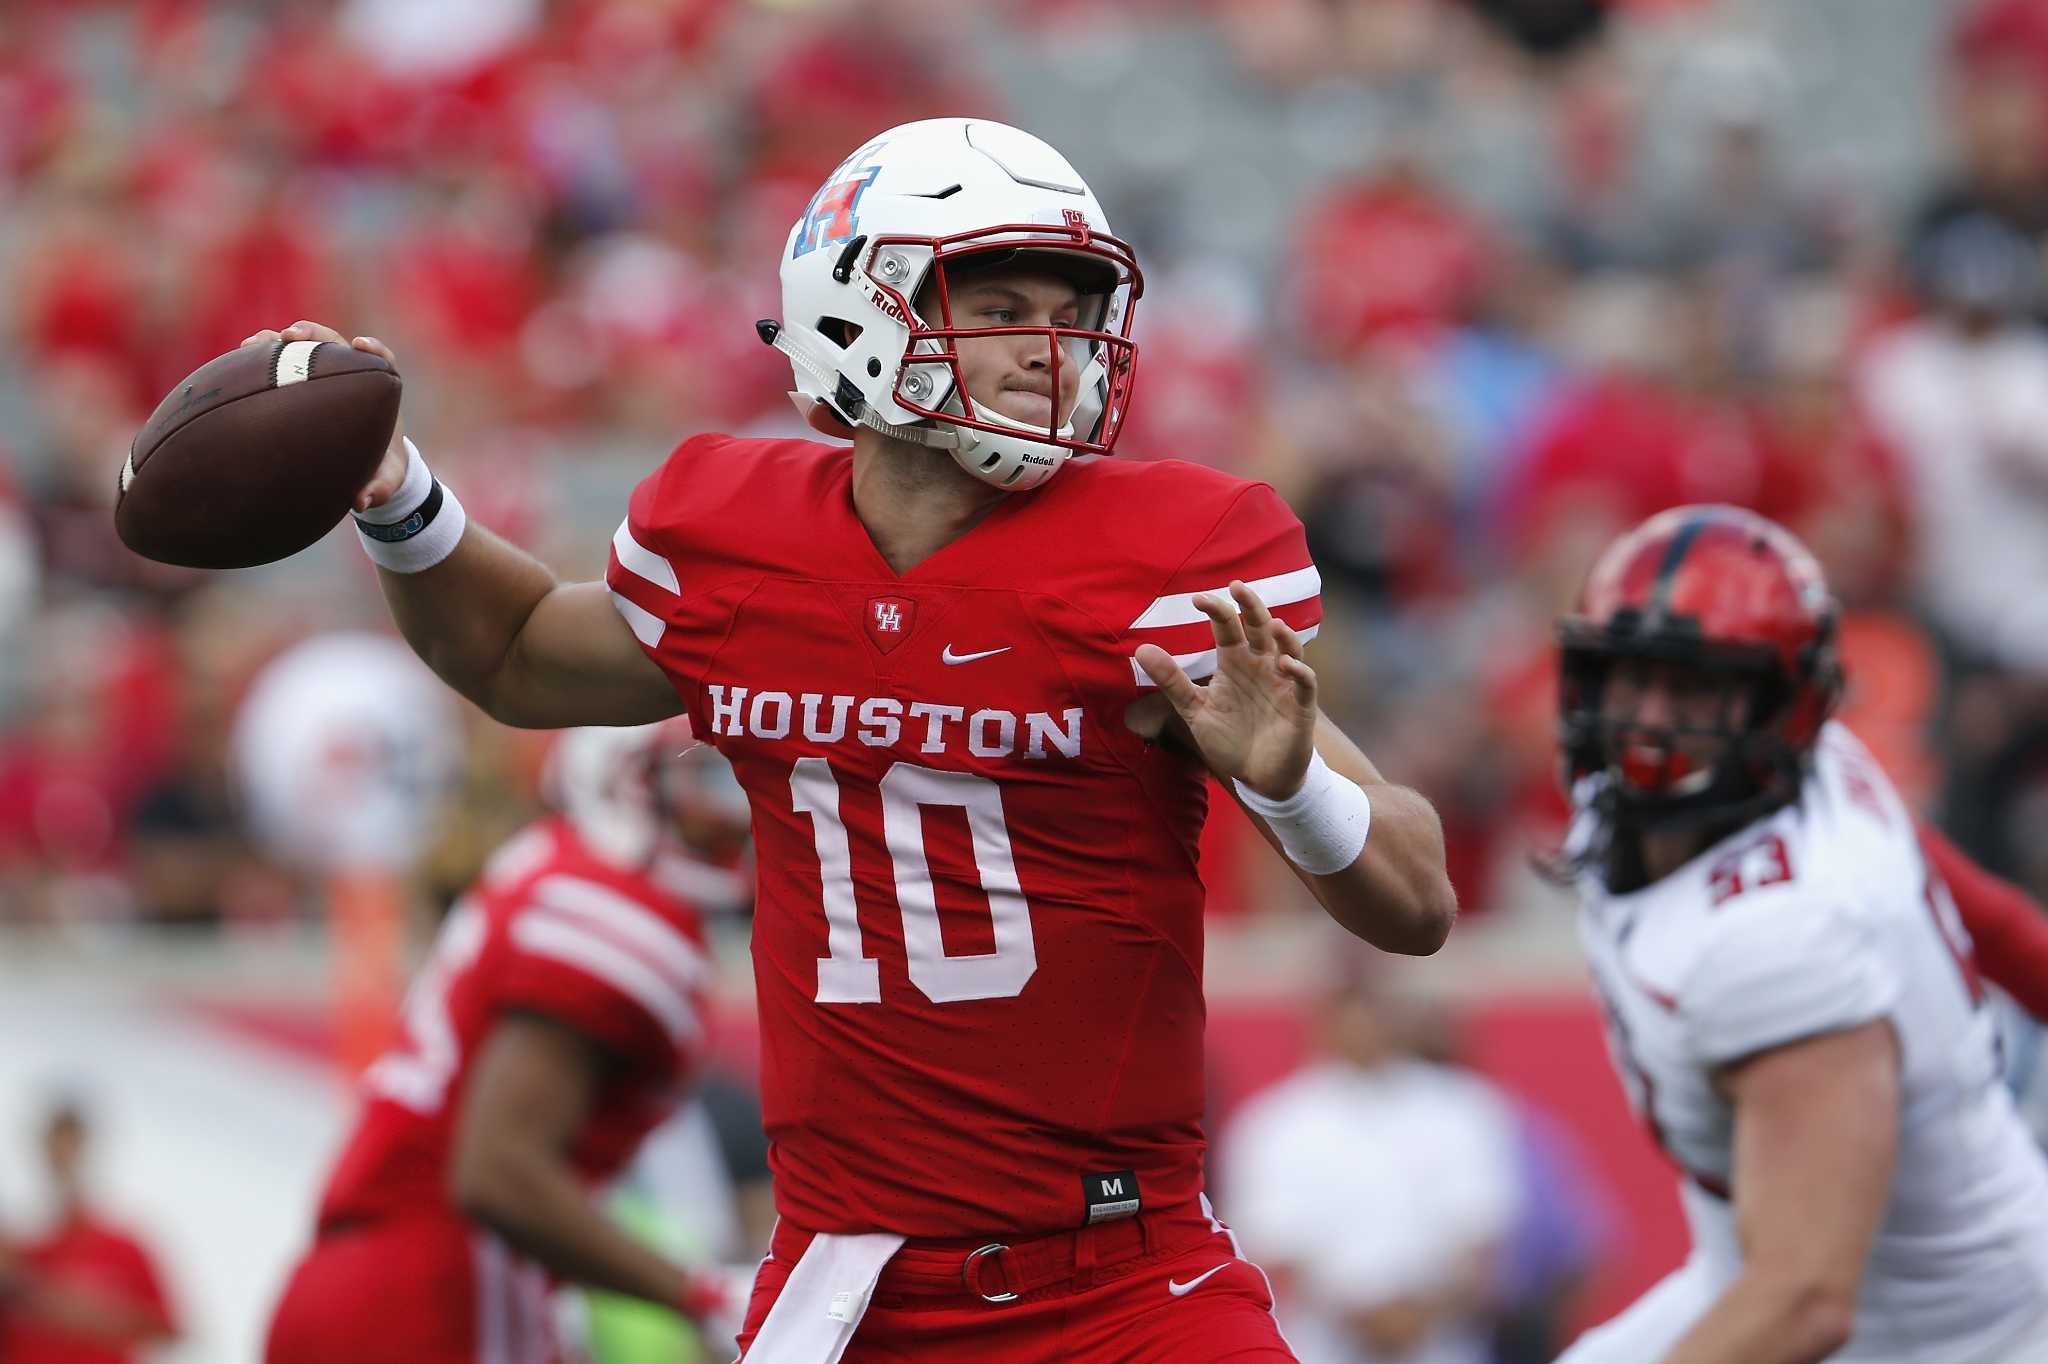 Kyle Allen S Future At Uh Unsure With Transfer Possible Houstonchronicle Com